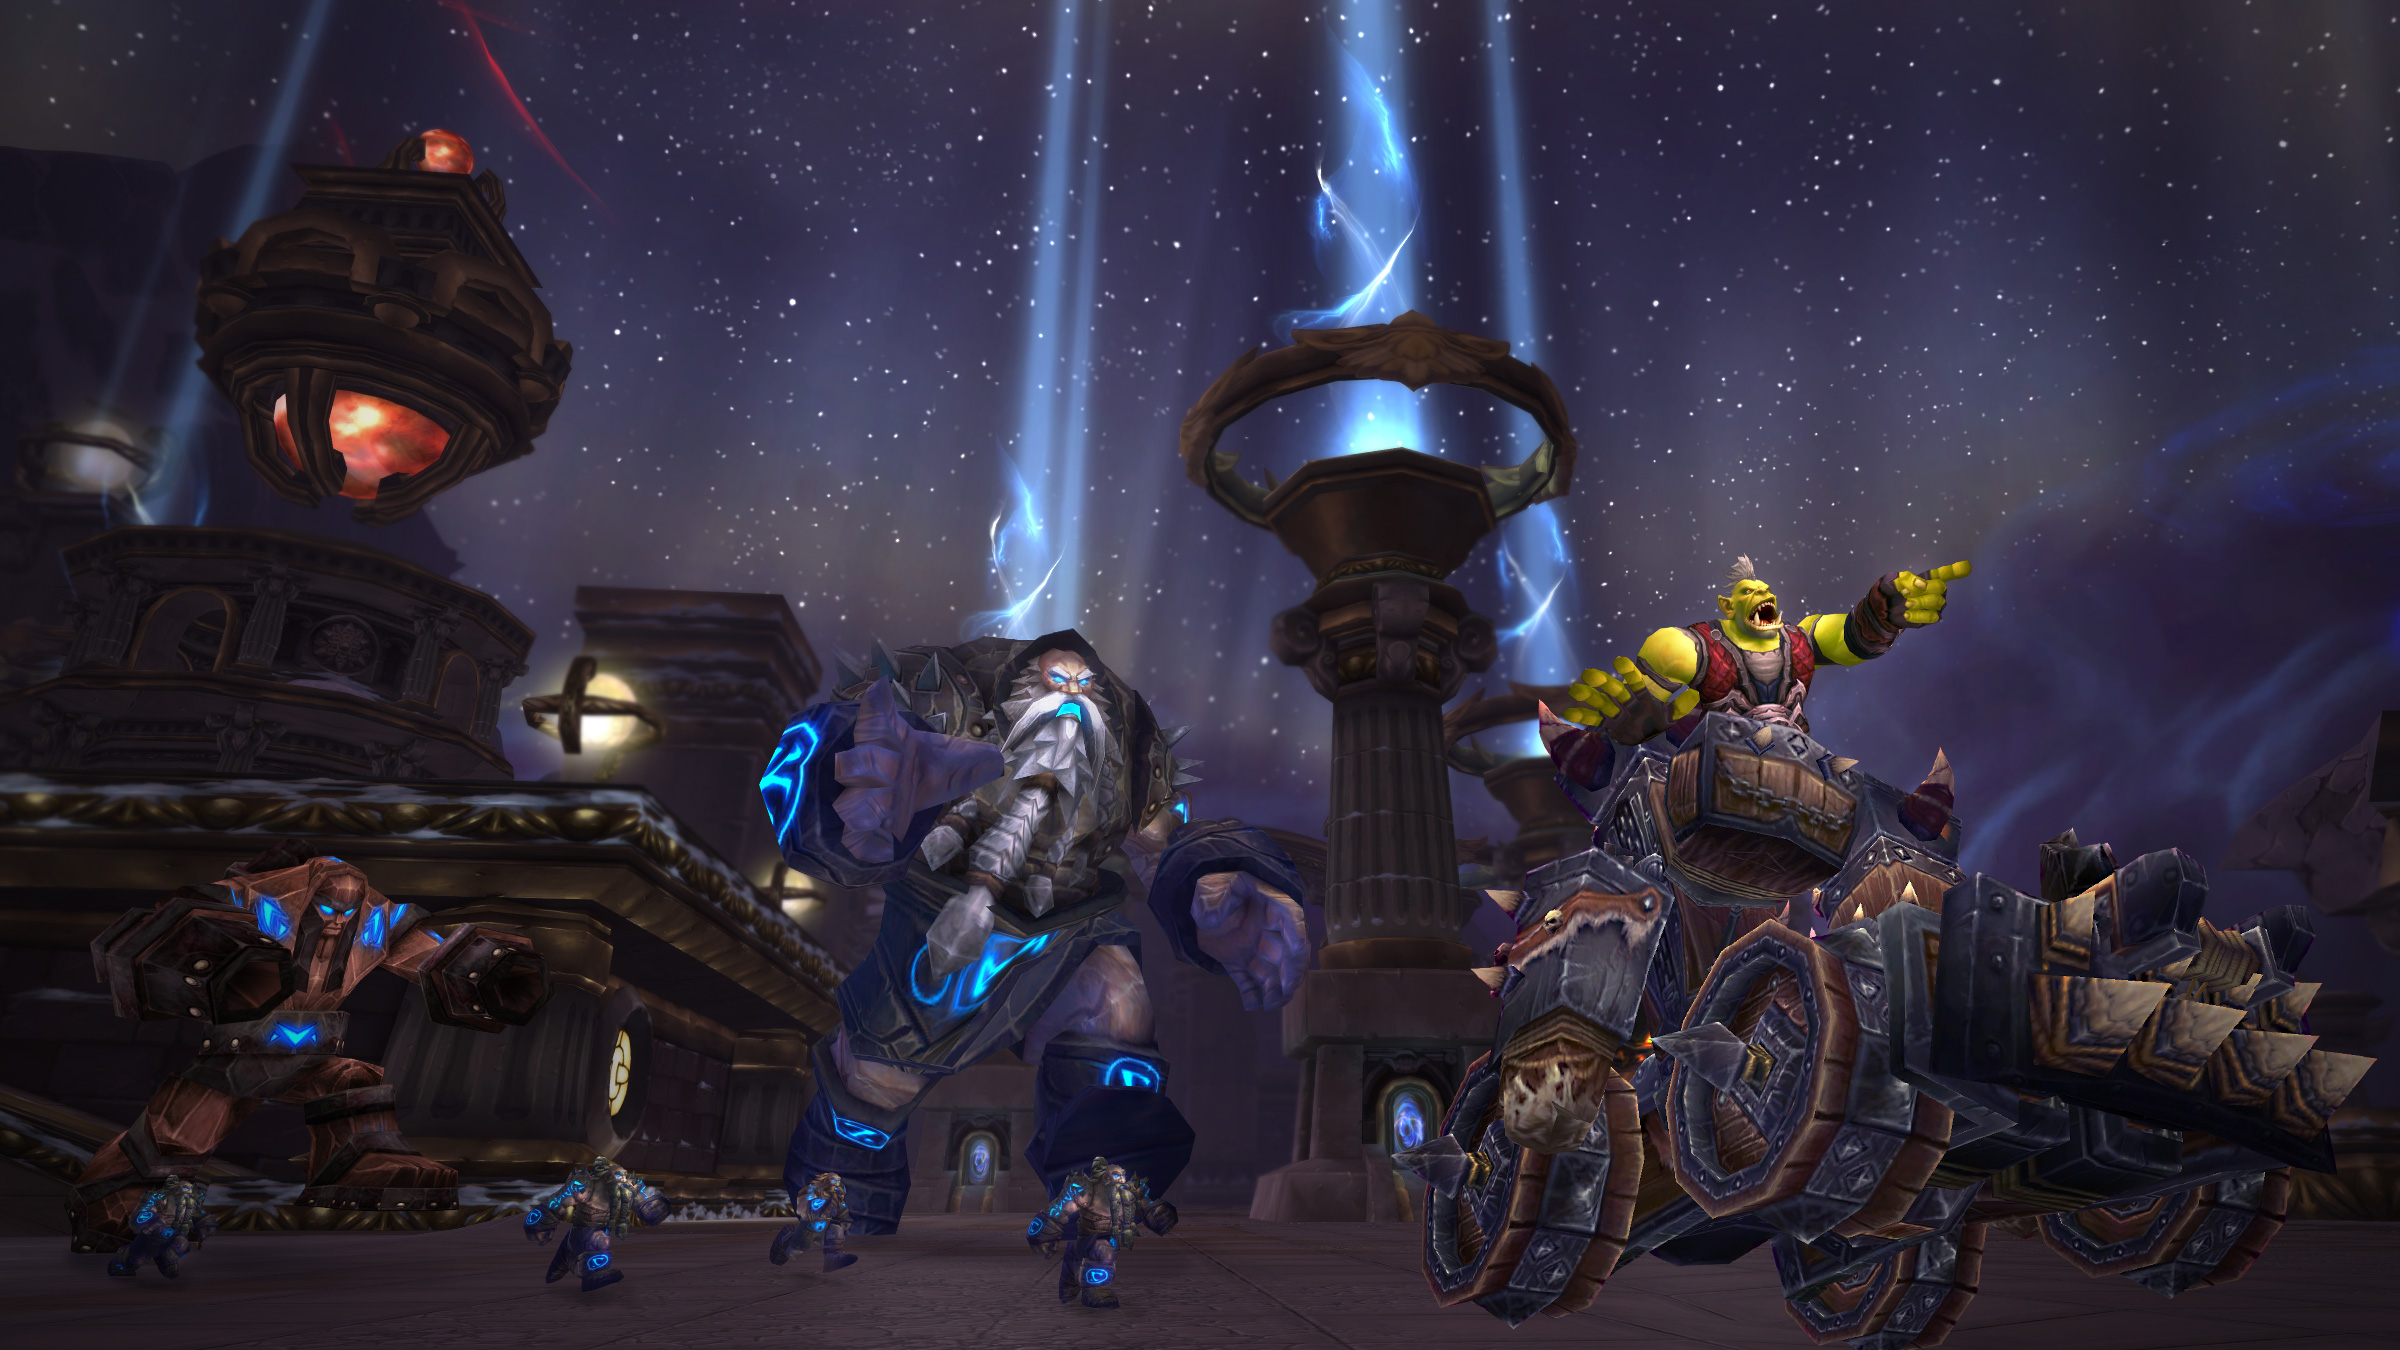 Wrath of the Lich King Timewalking Returns—November 12-19